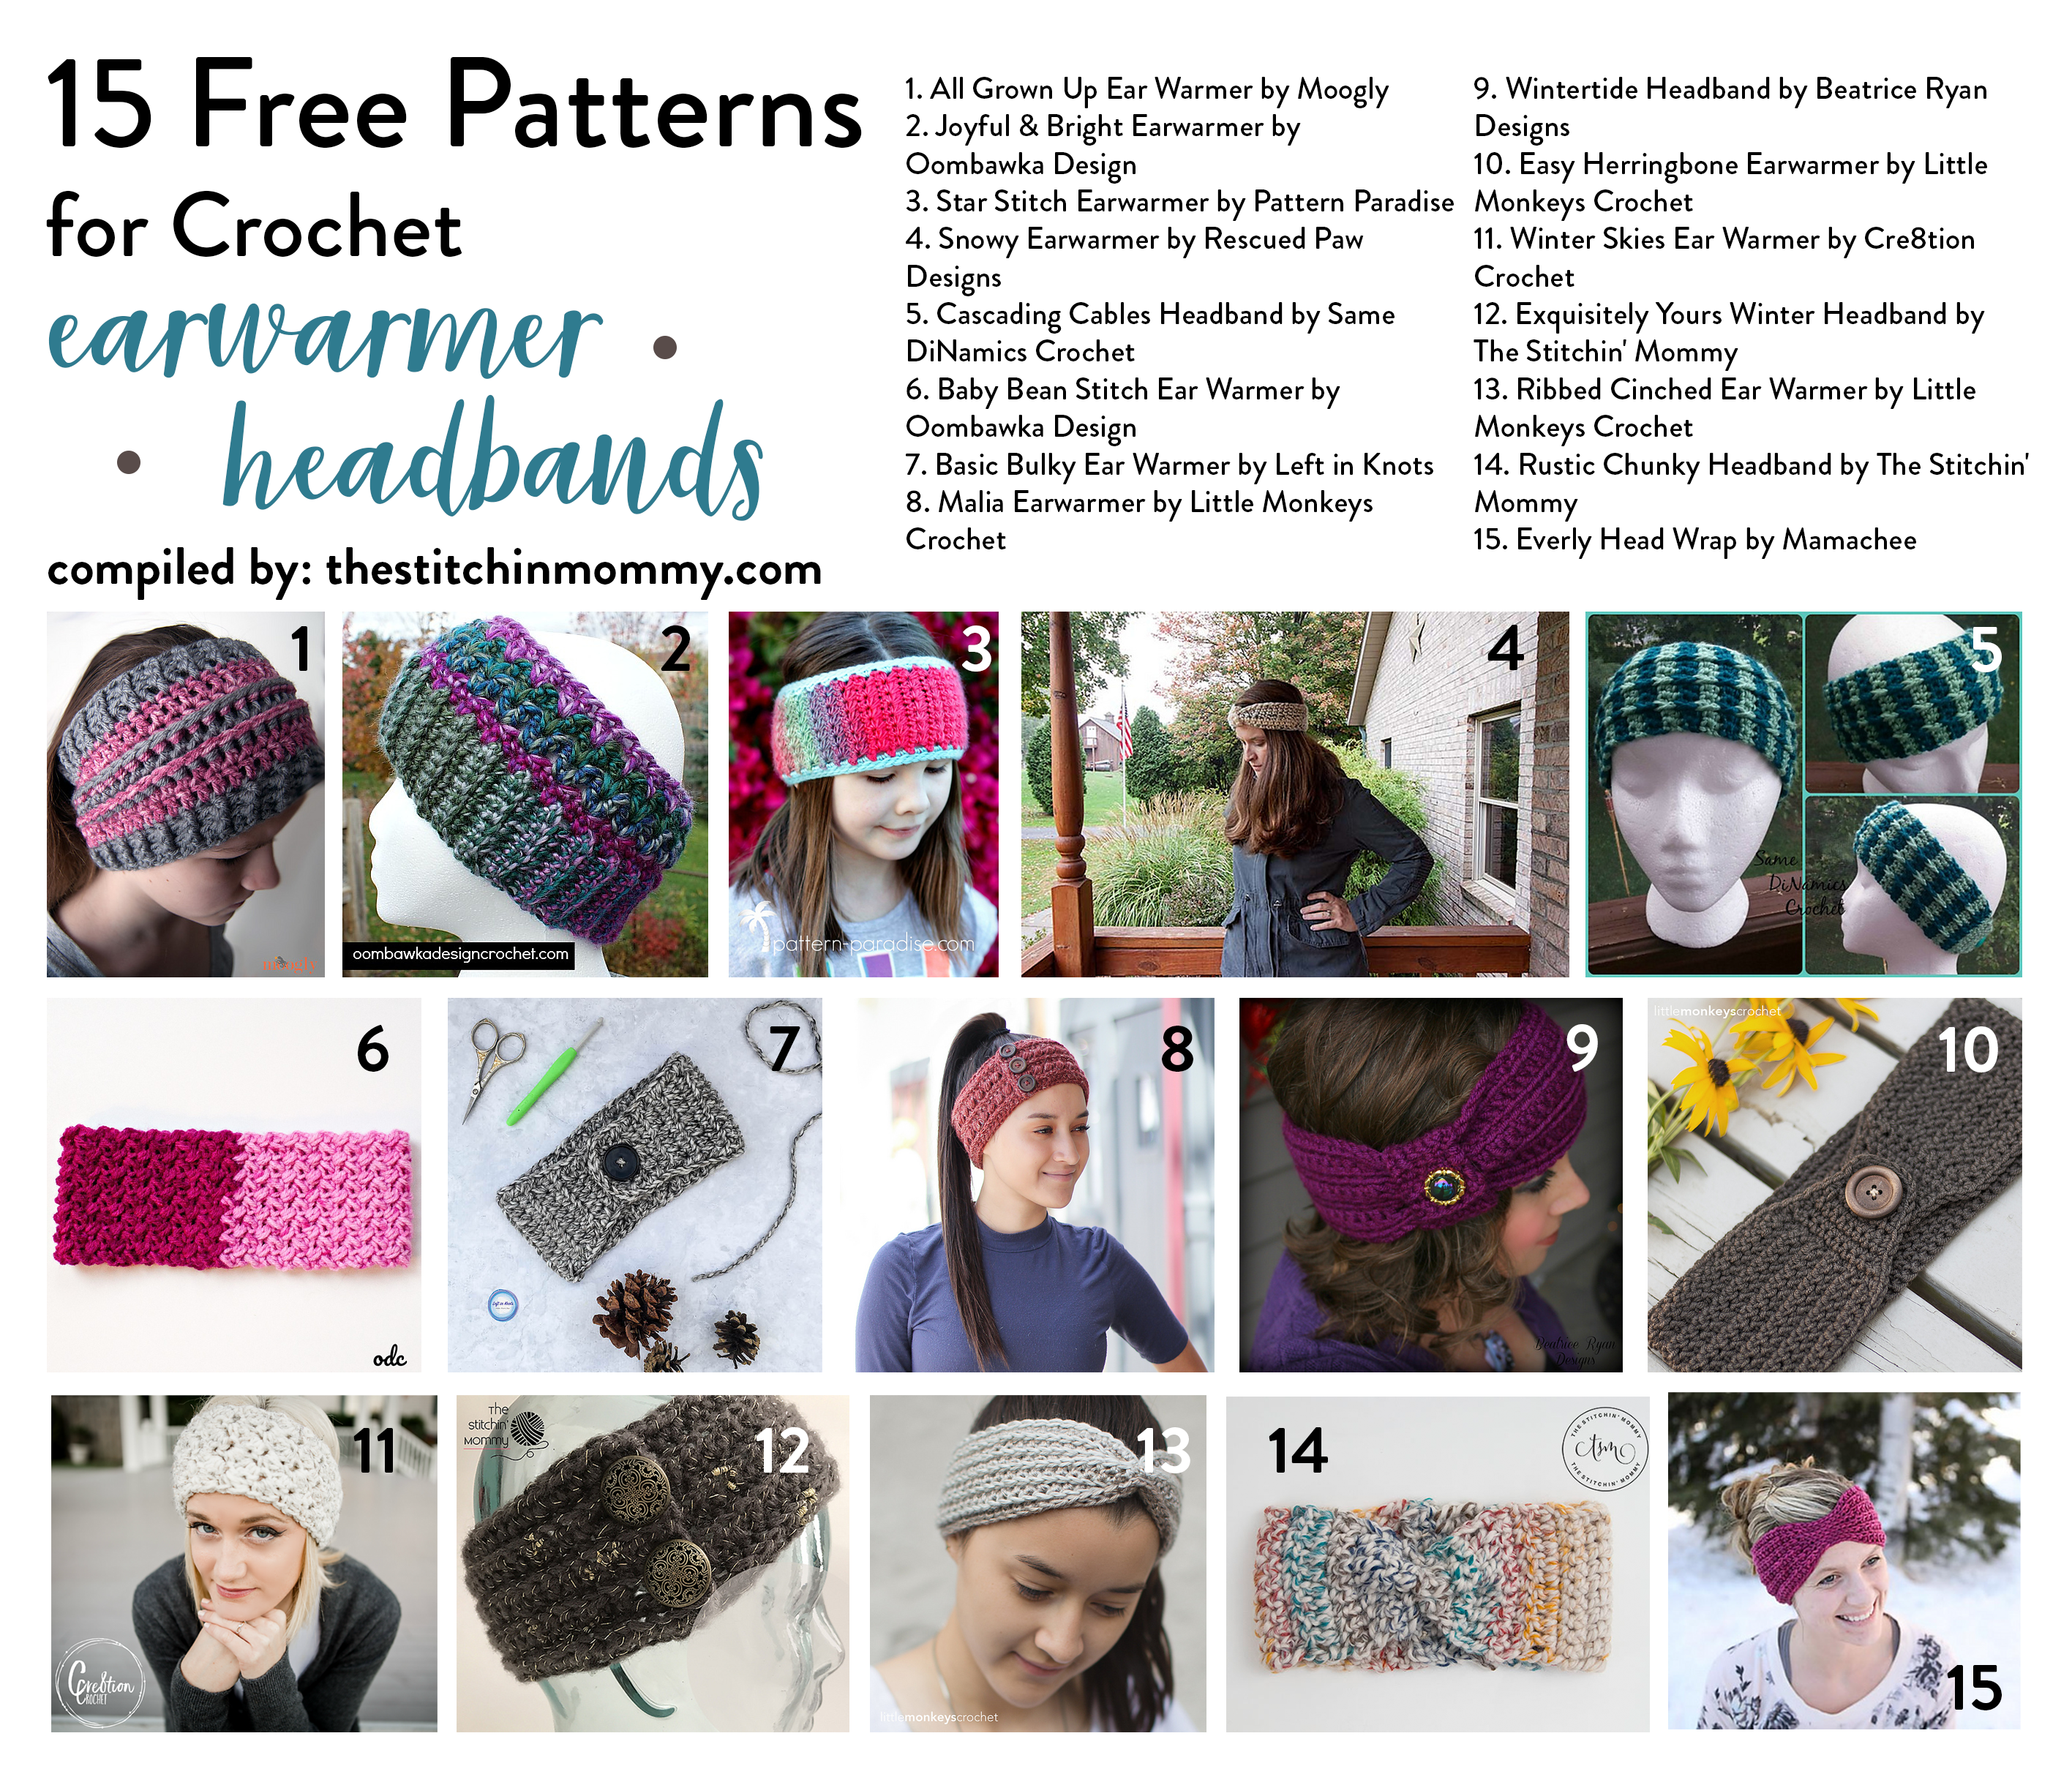 15 Free Patterns for Crochet Earwarmer Headbands - The Stitchin Mommy